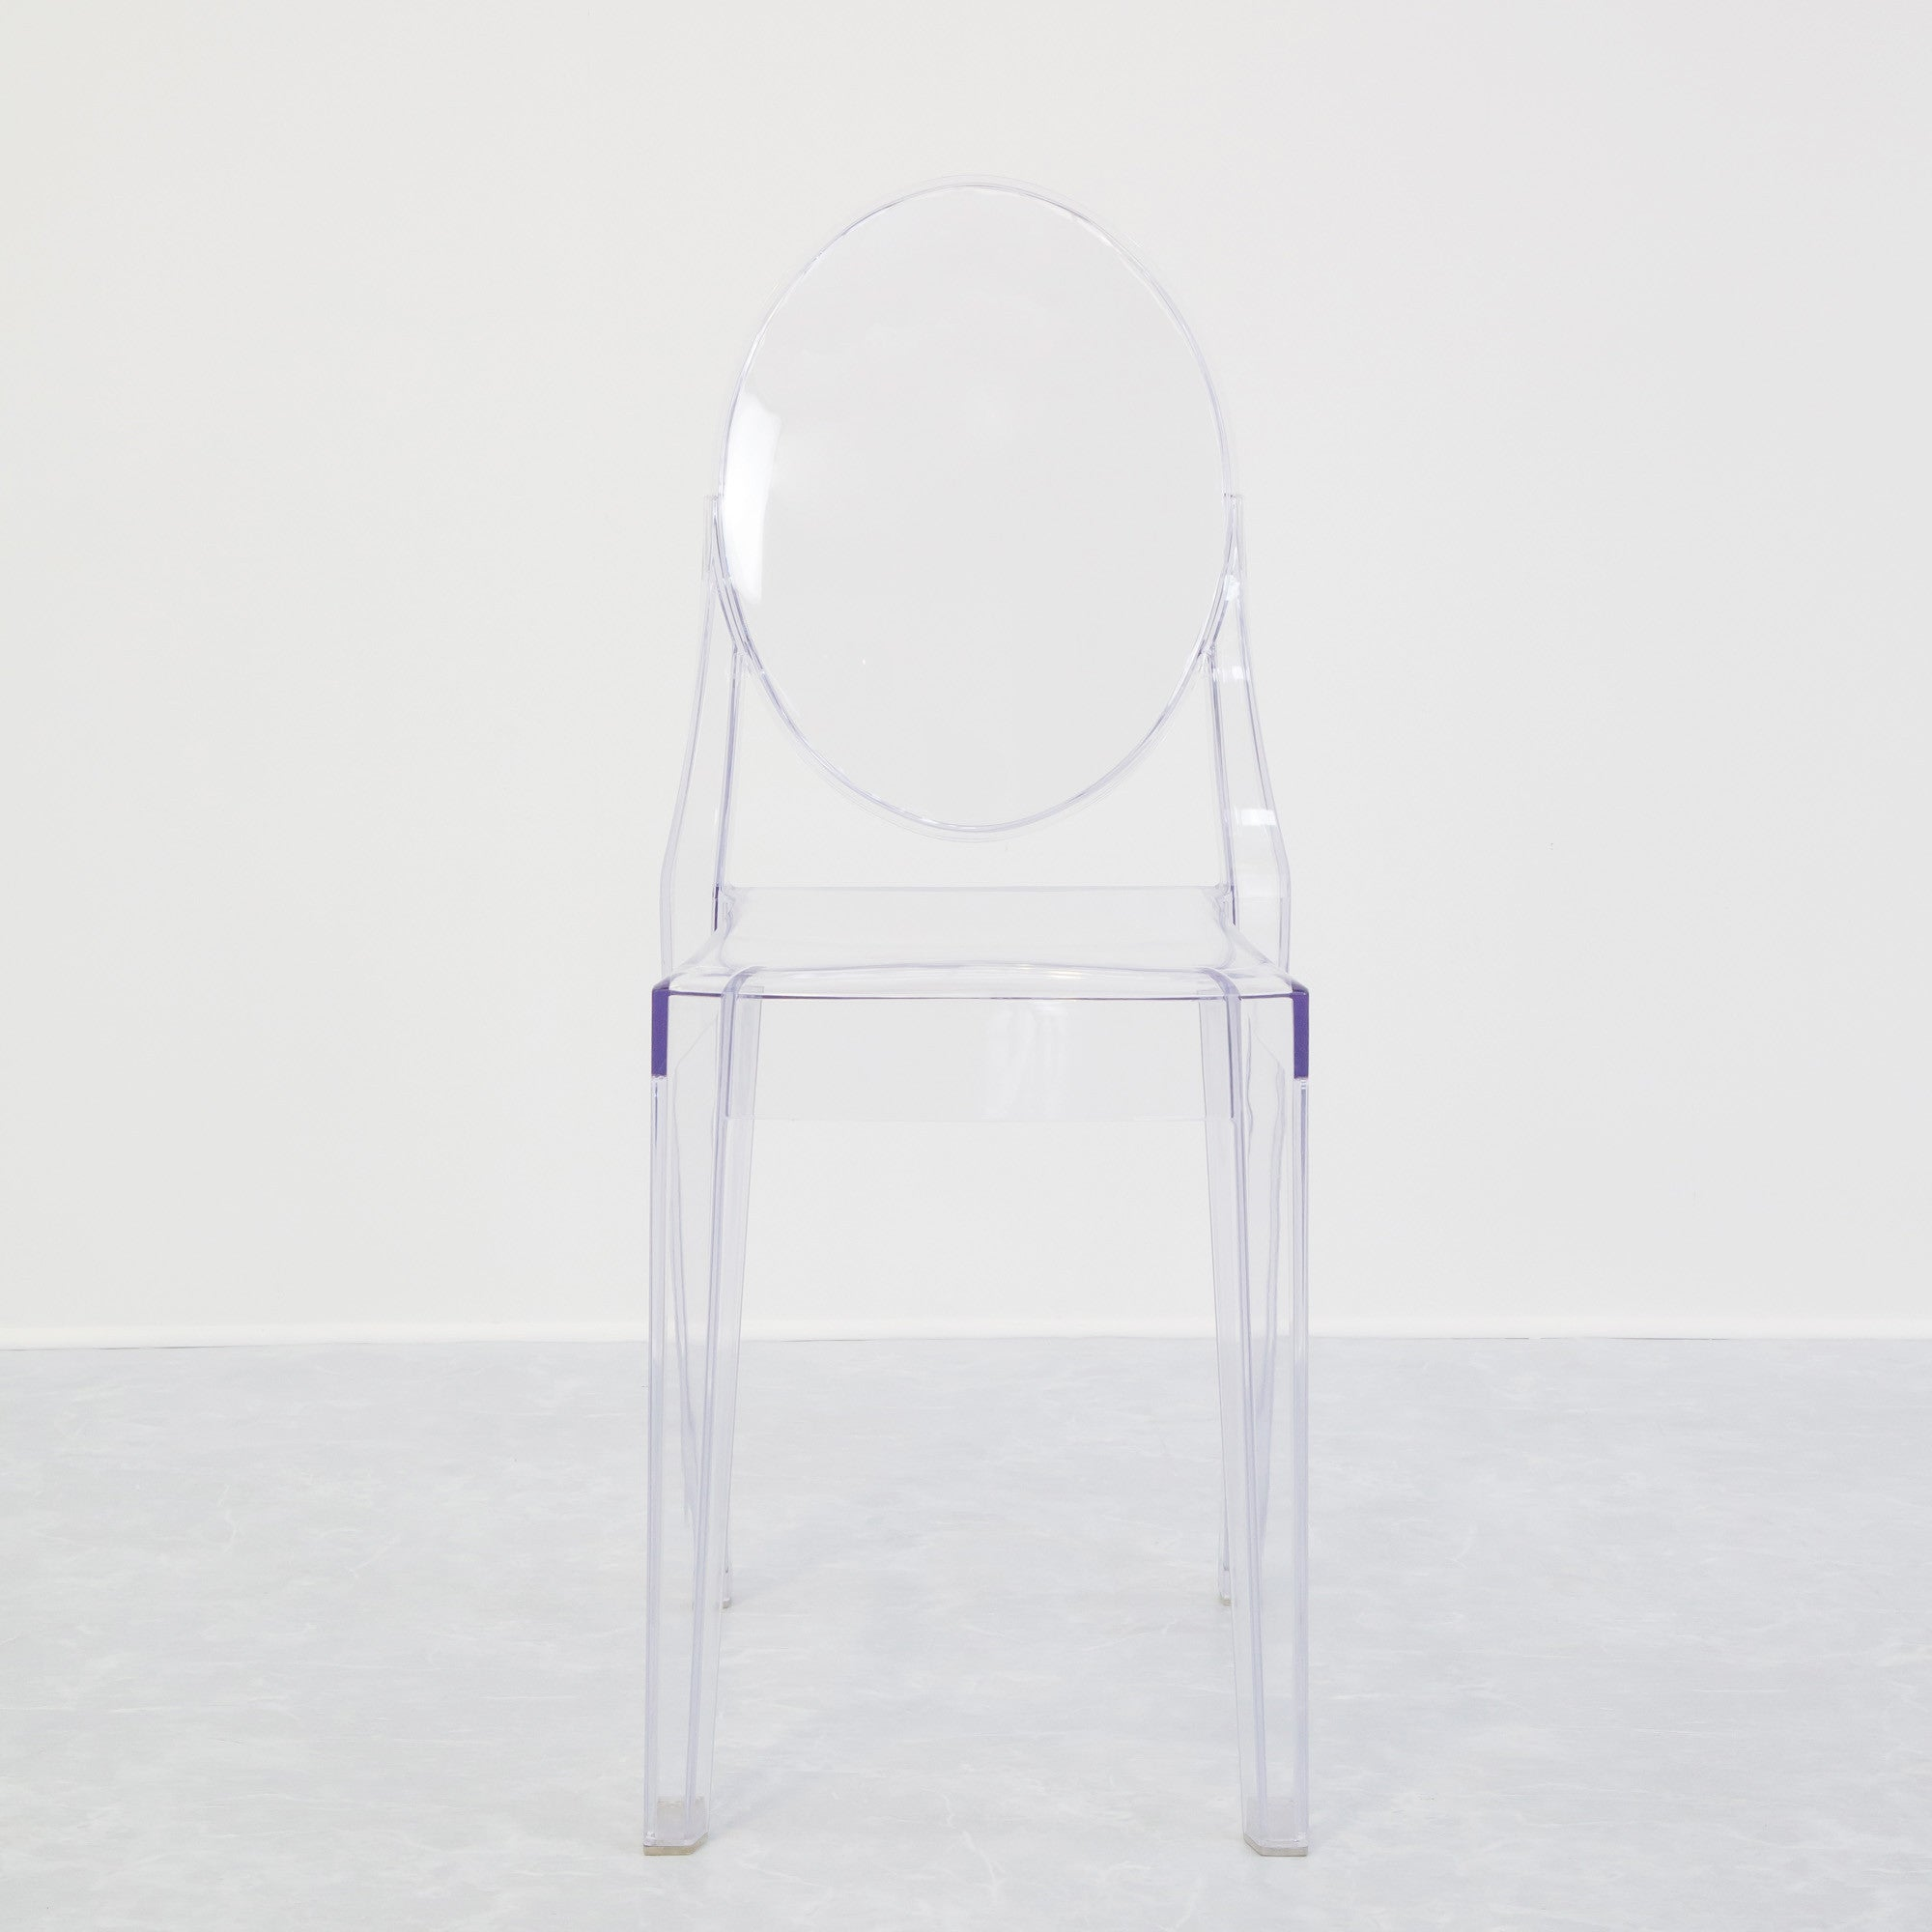 of size design set excellent chairs transparent replica room pictures philippe inspiration clear ghost new vintage full lucite starck dining louis chair style furniturebox acrylic